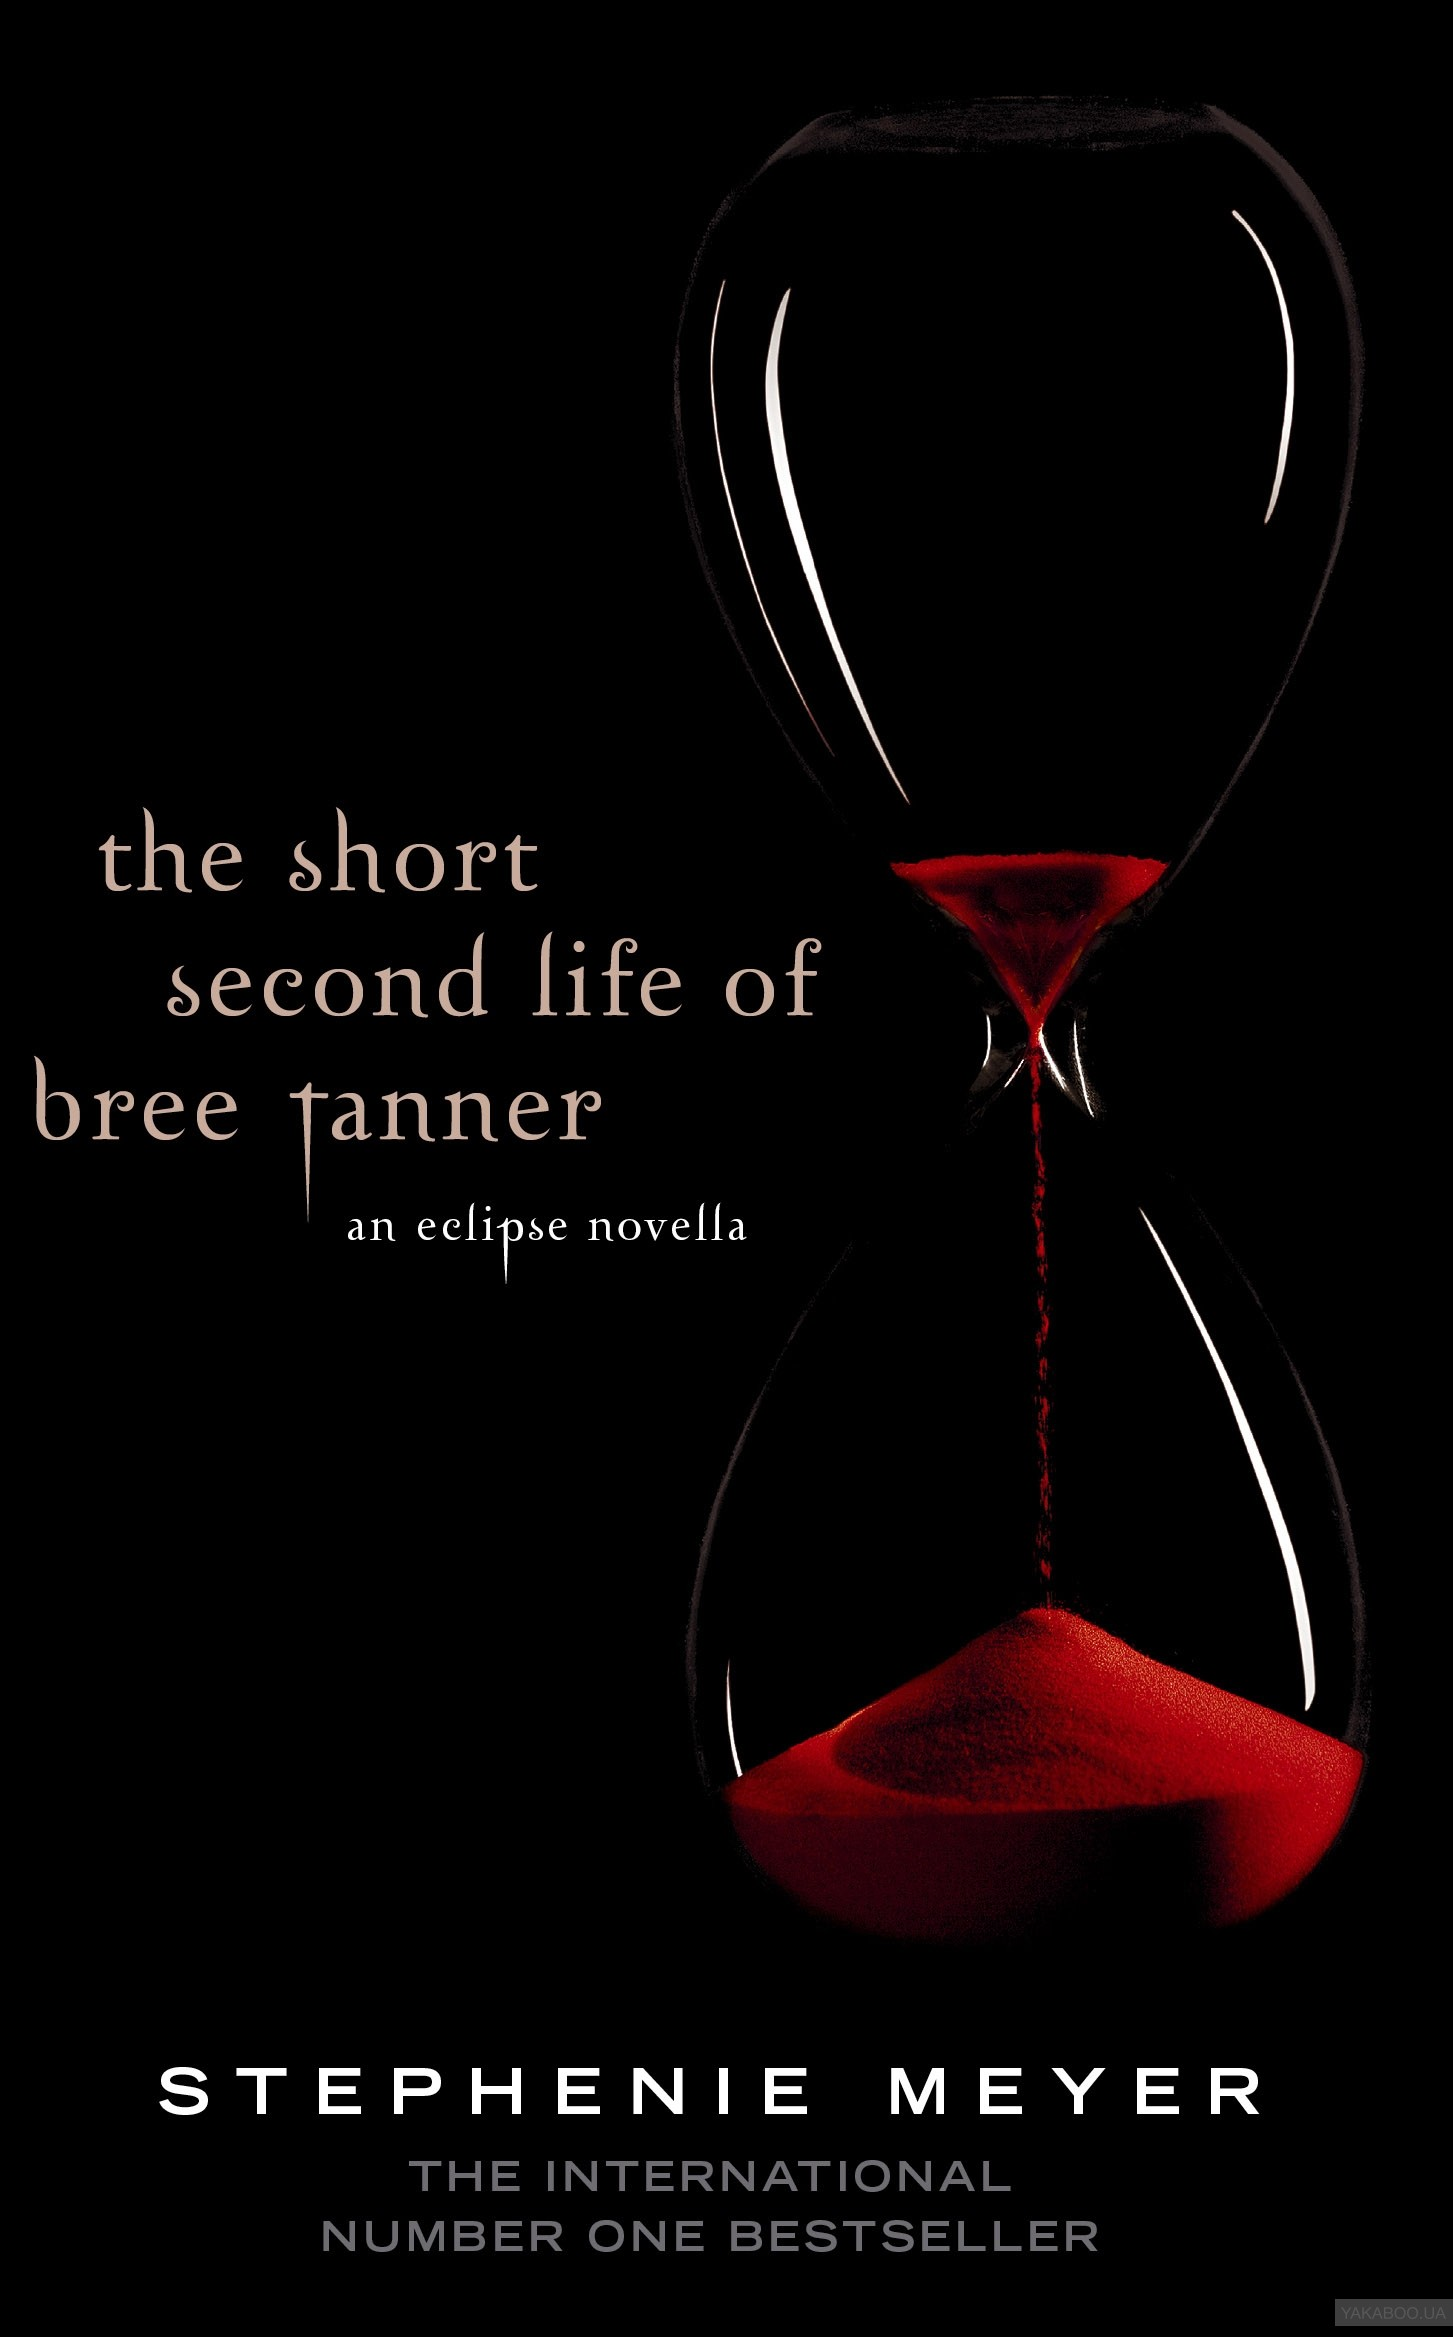 The short second life